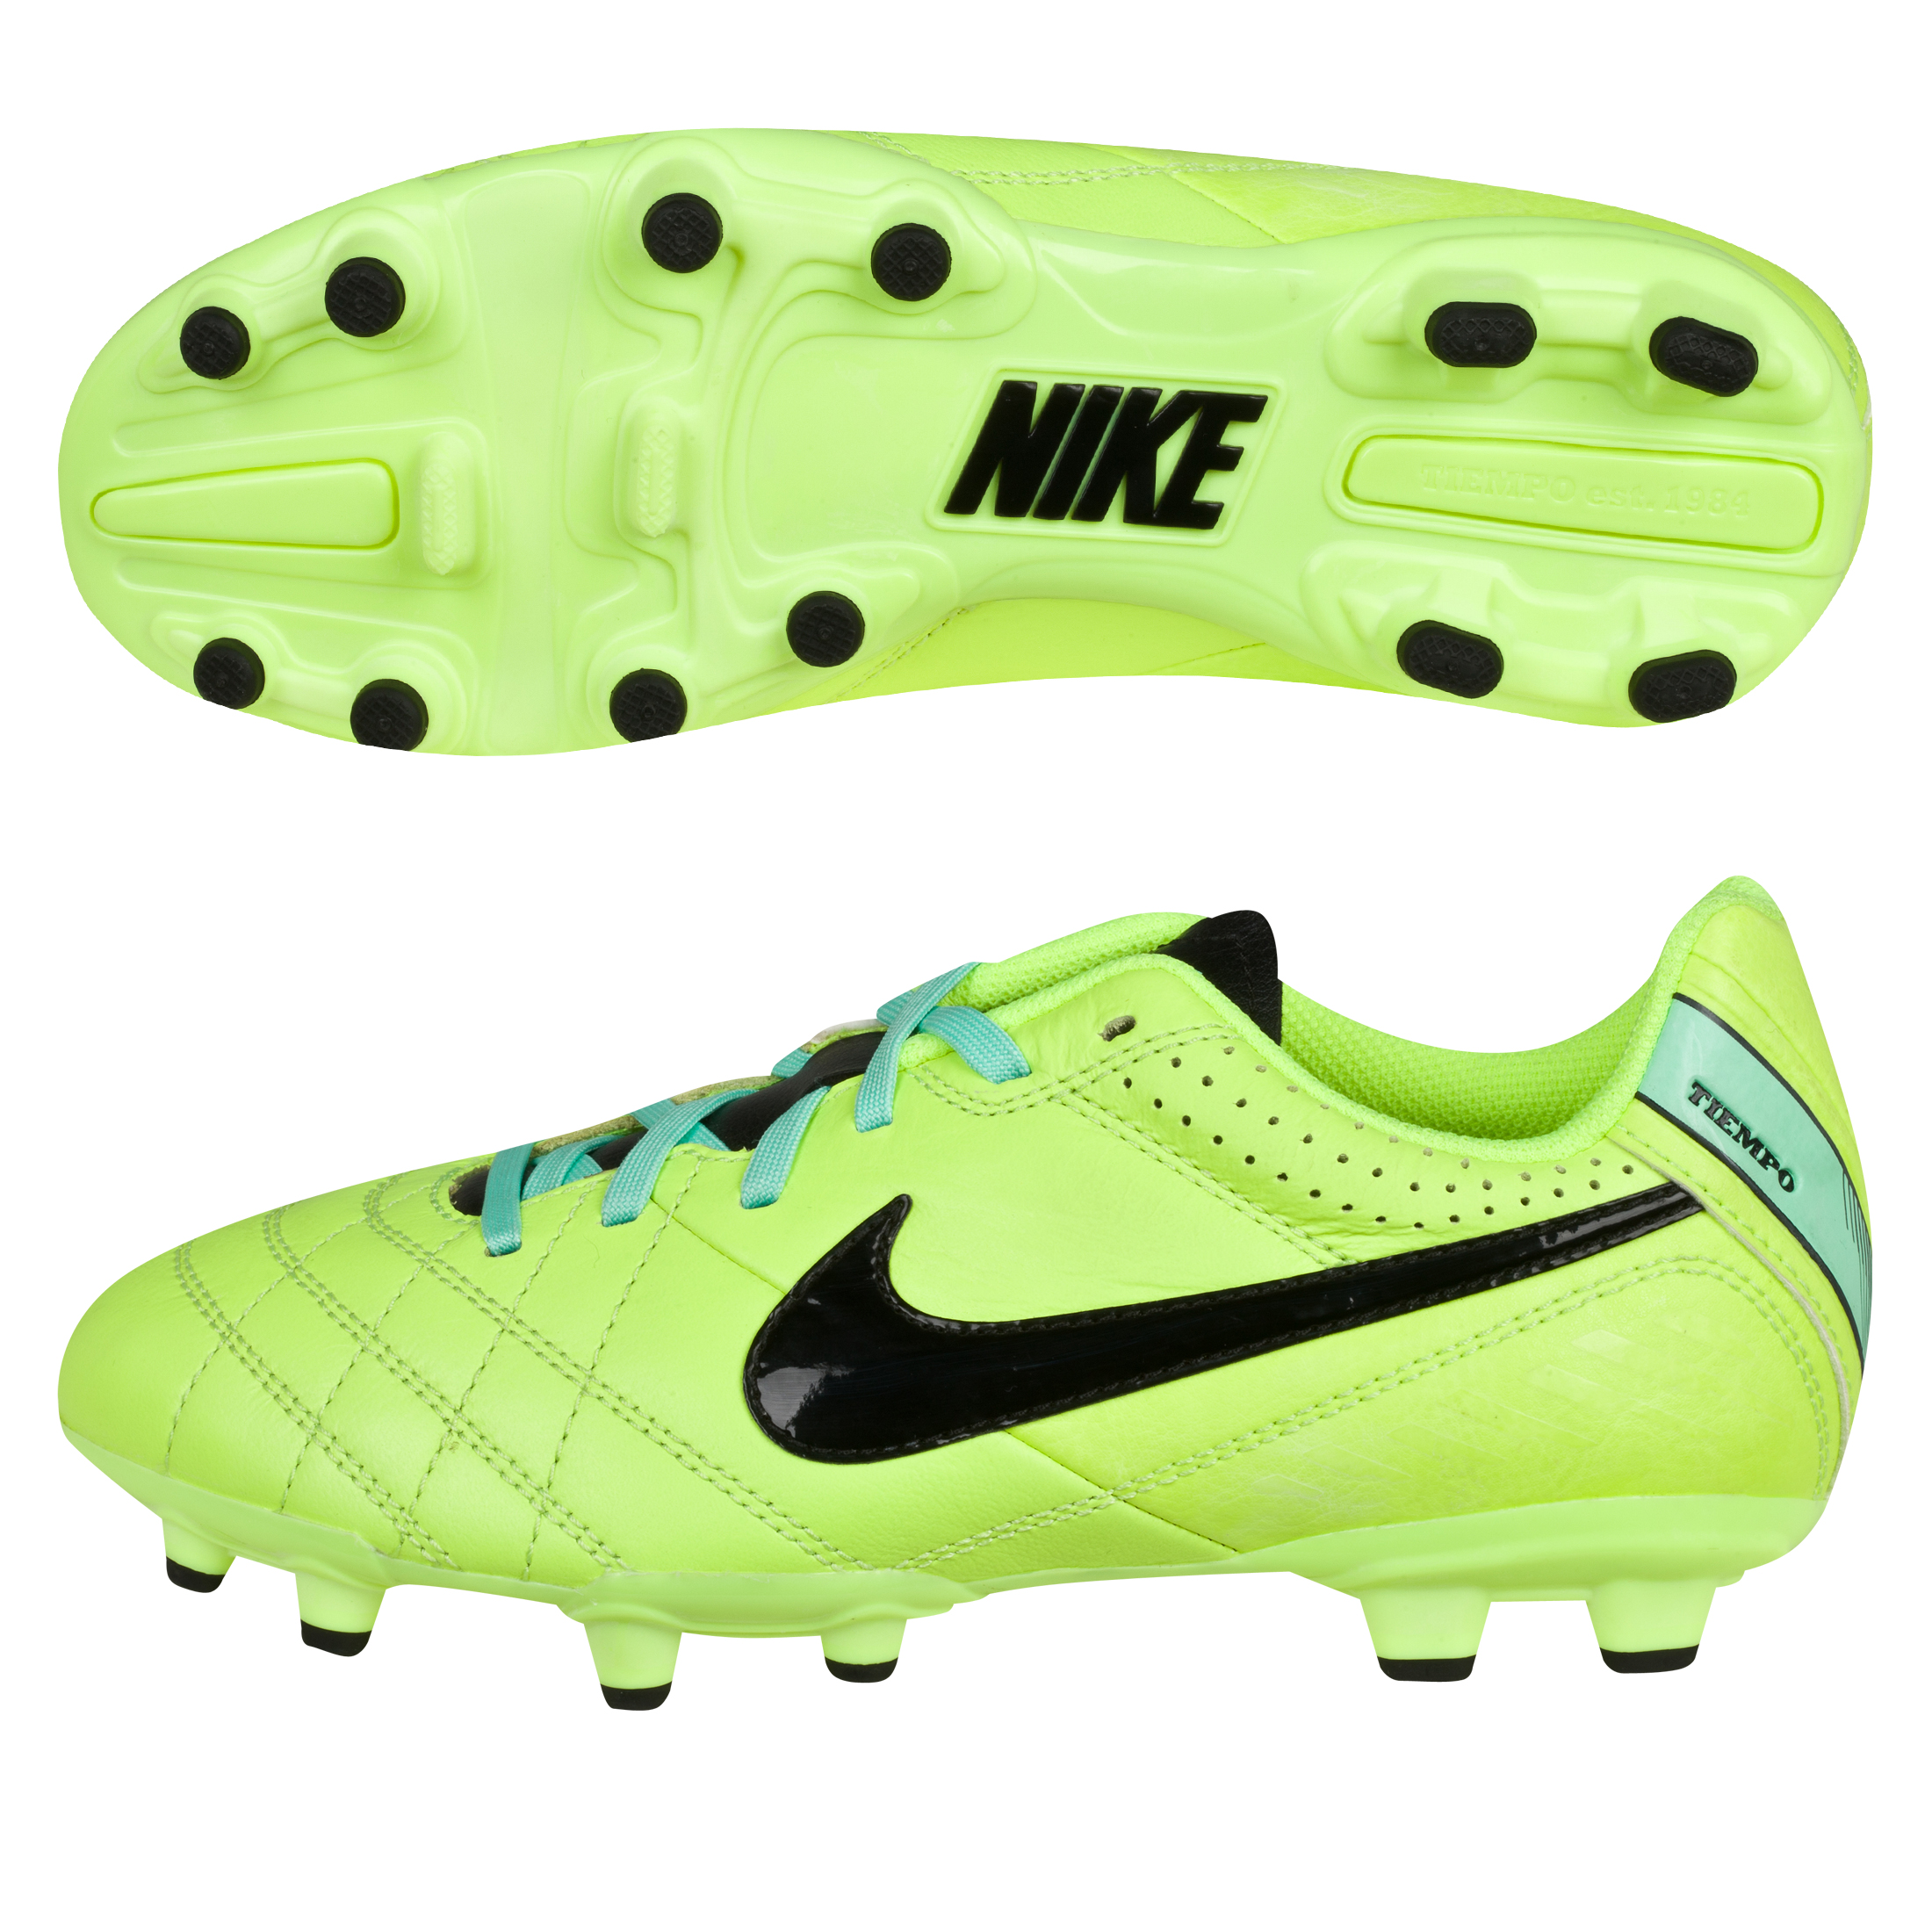 Nike Tiempo Natural Iv Firm Ground Football Boots - Kids-Volt/Black/Green Glow Lt Green